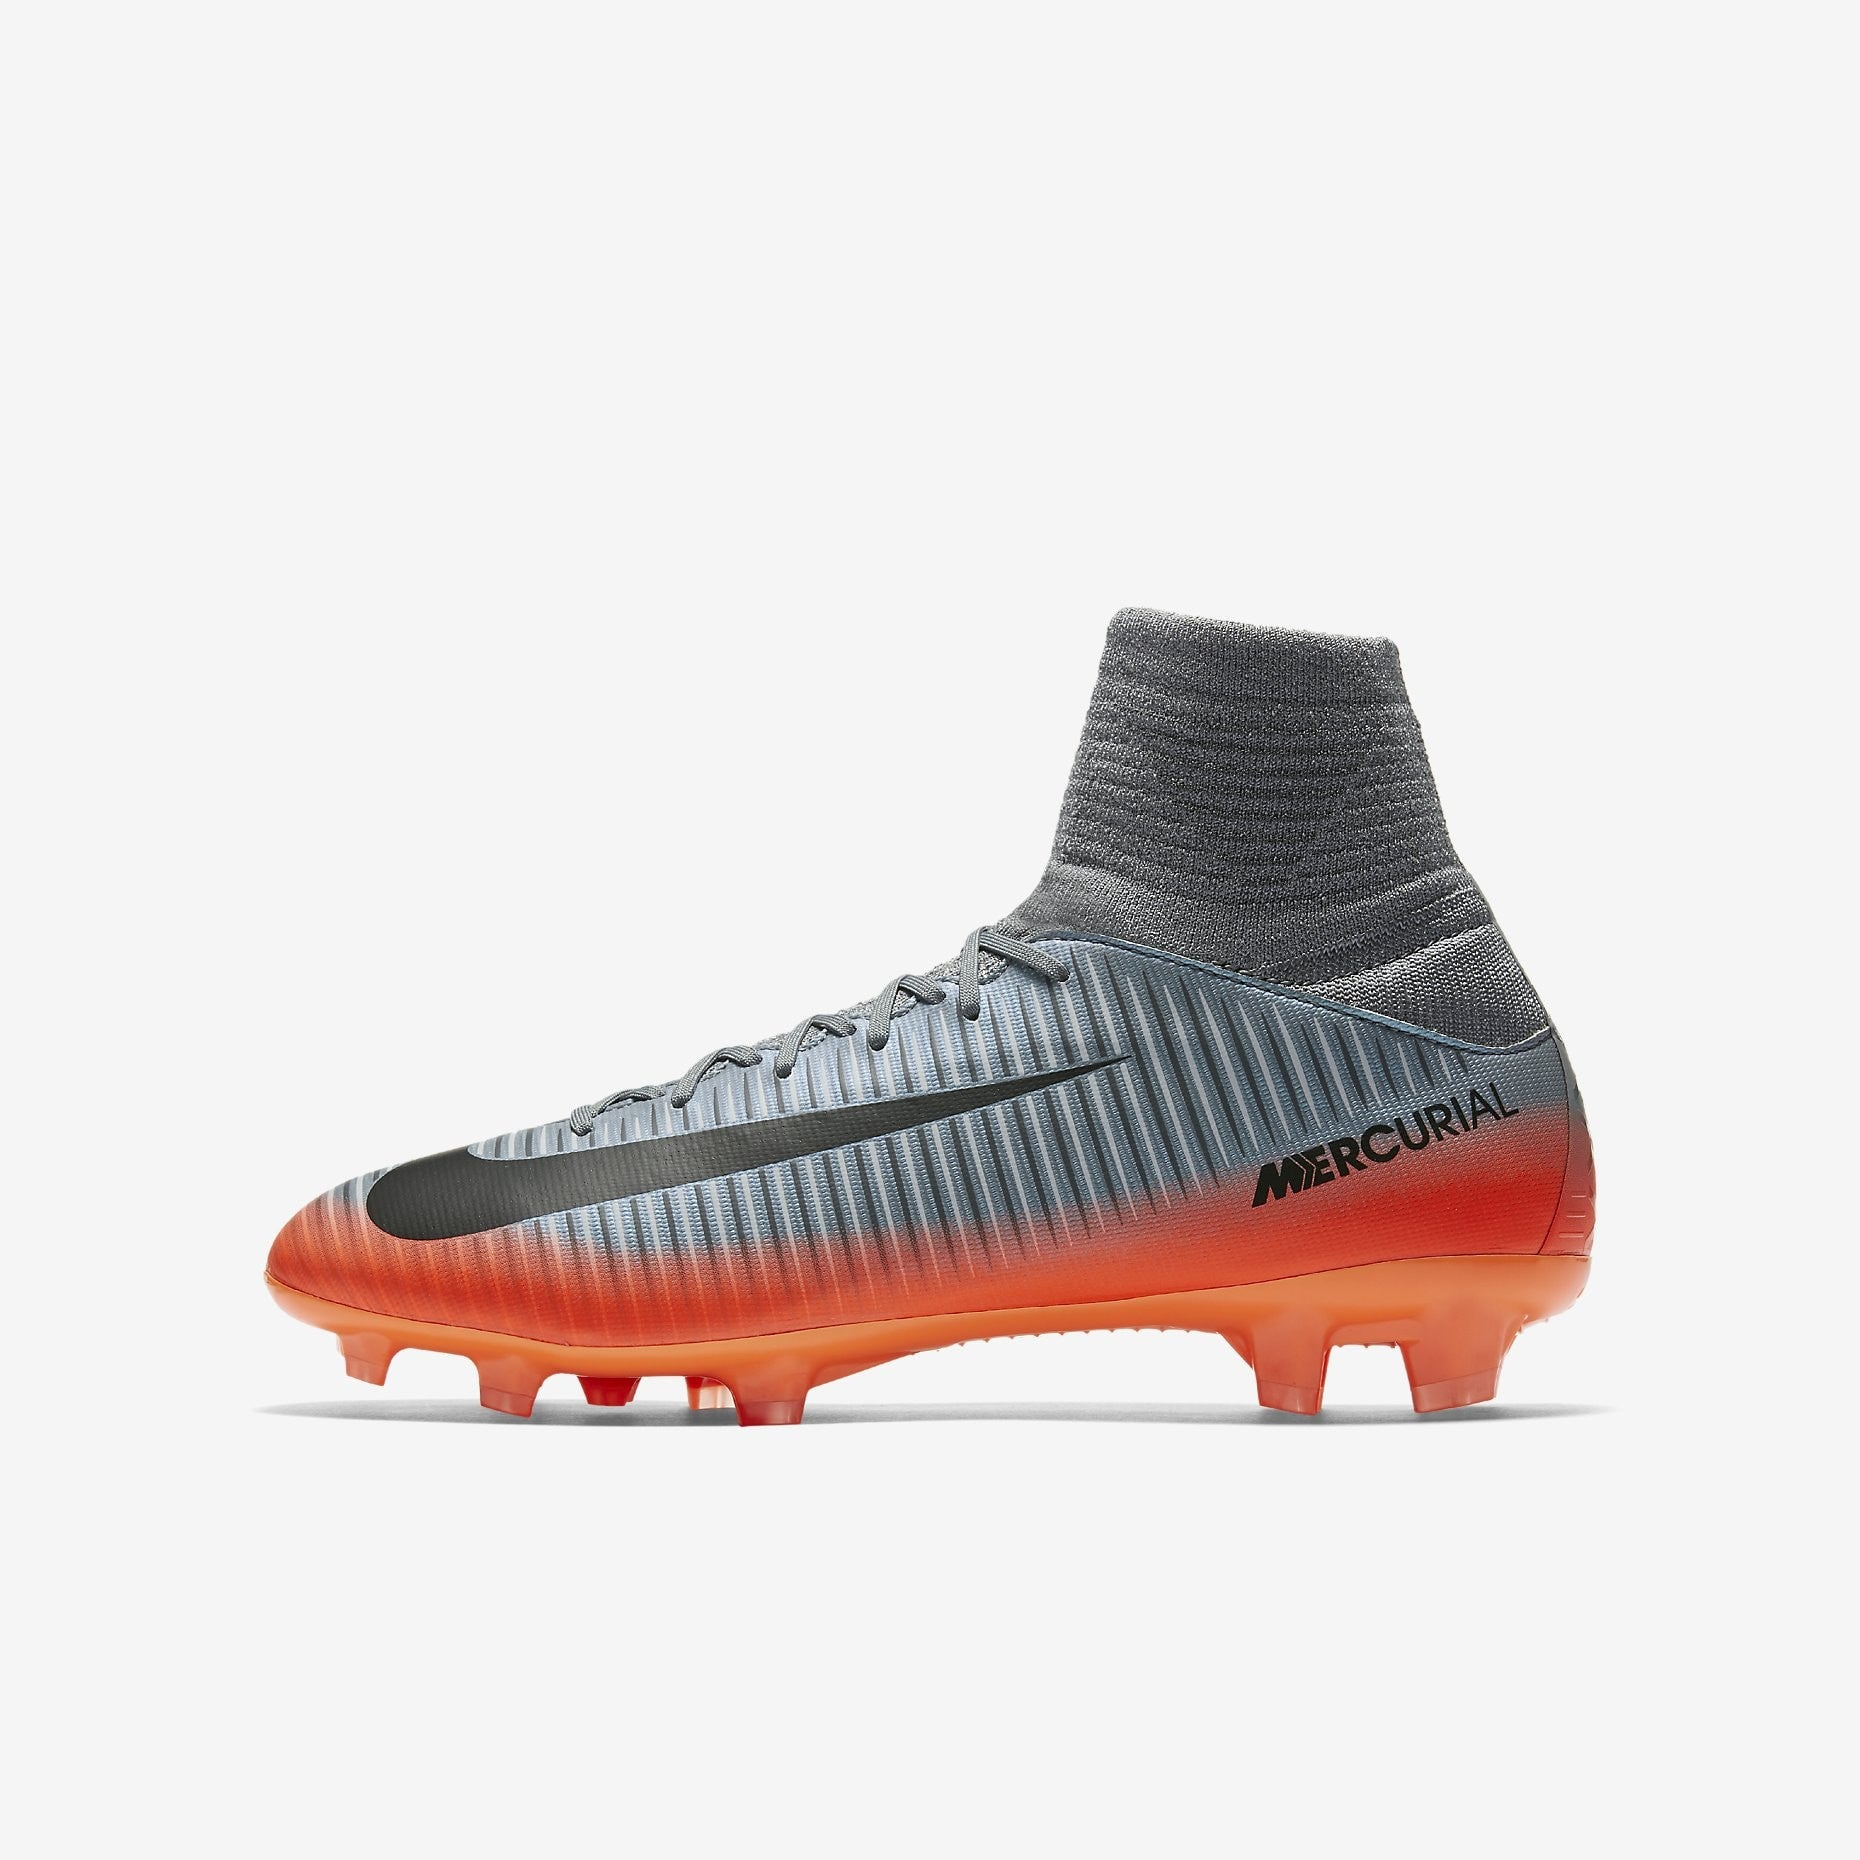 48df7c473 ... discount code for nike junior mercurial superfly v cr7 fg la liga  soccer fdbe3 e325c